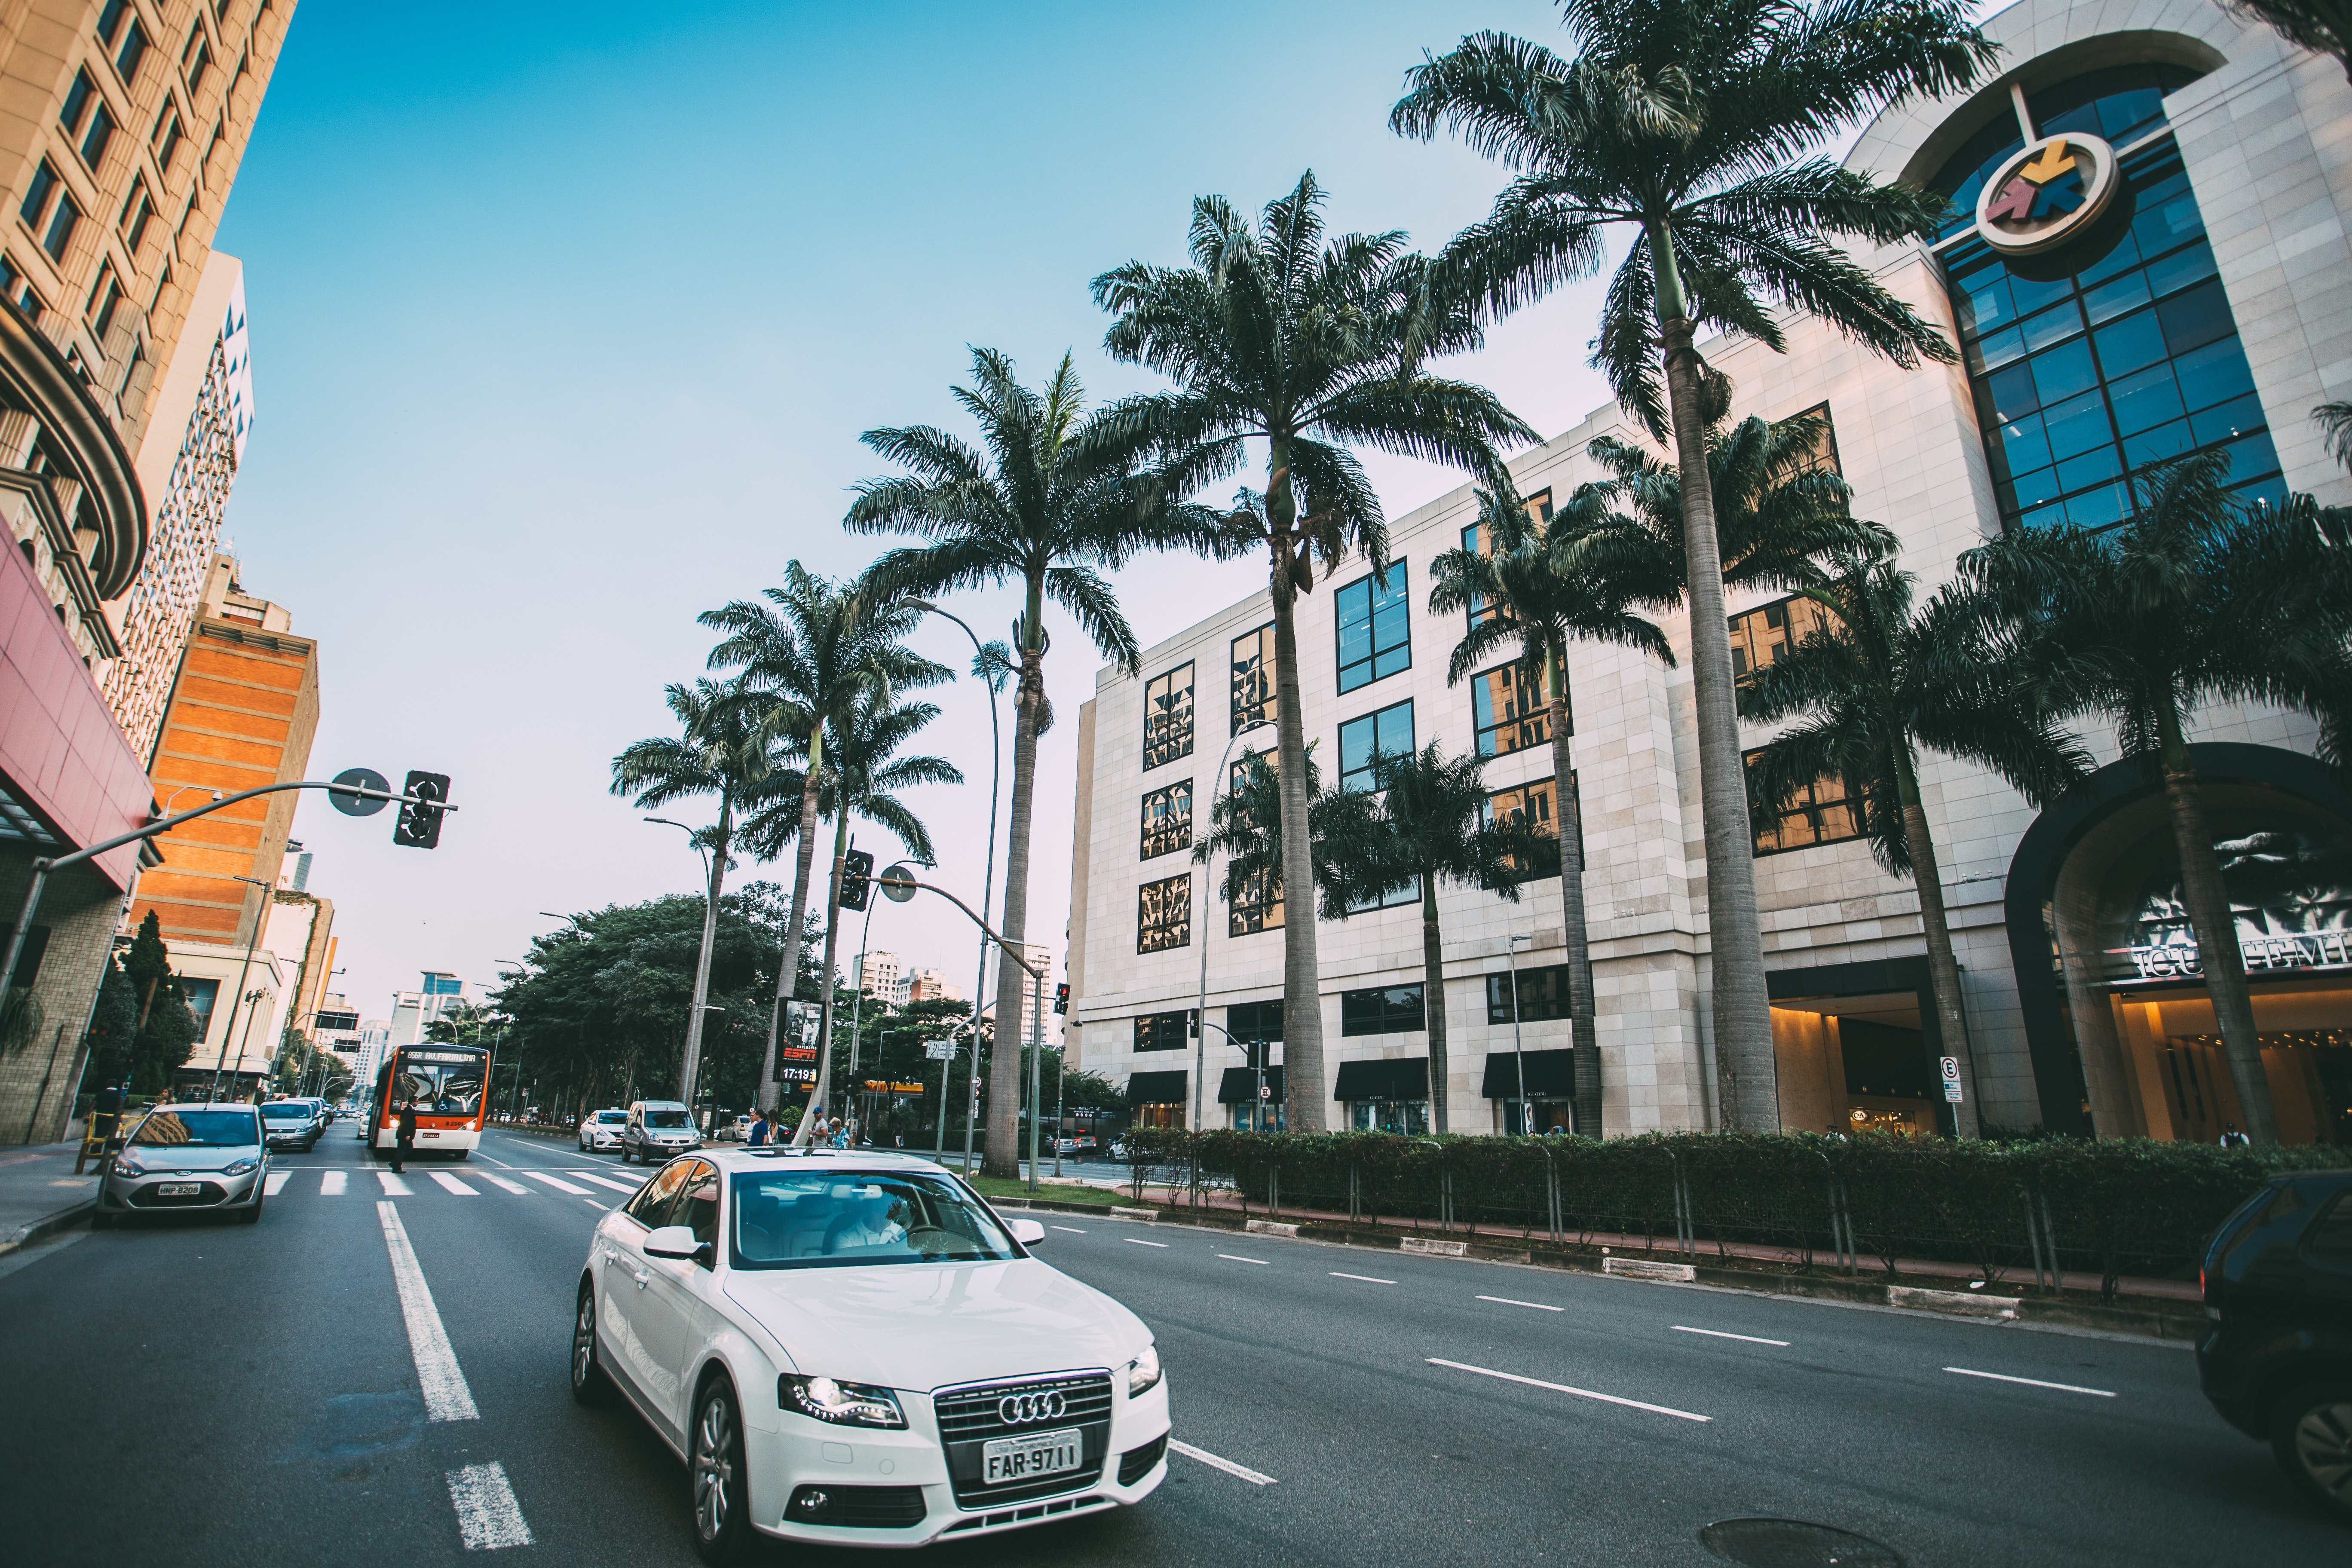 White Audi Sedan on Gray Concrete Road Near Green Trees Surround by Concrete Buildings, Architecture, Palm trees, Urban, Transportation system, HQ Photo